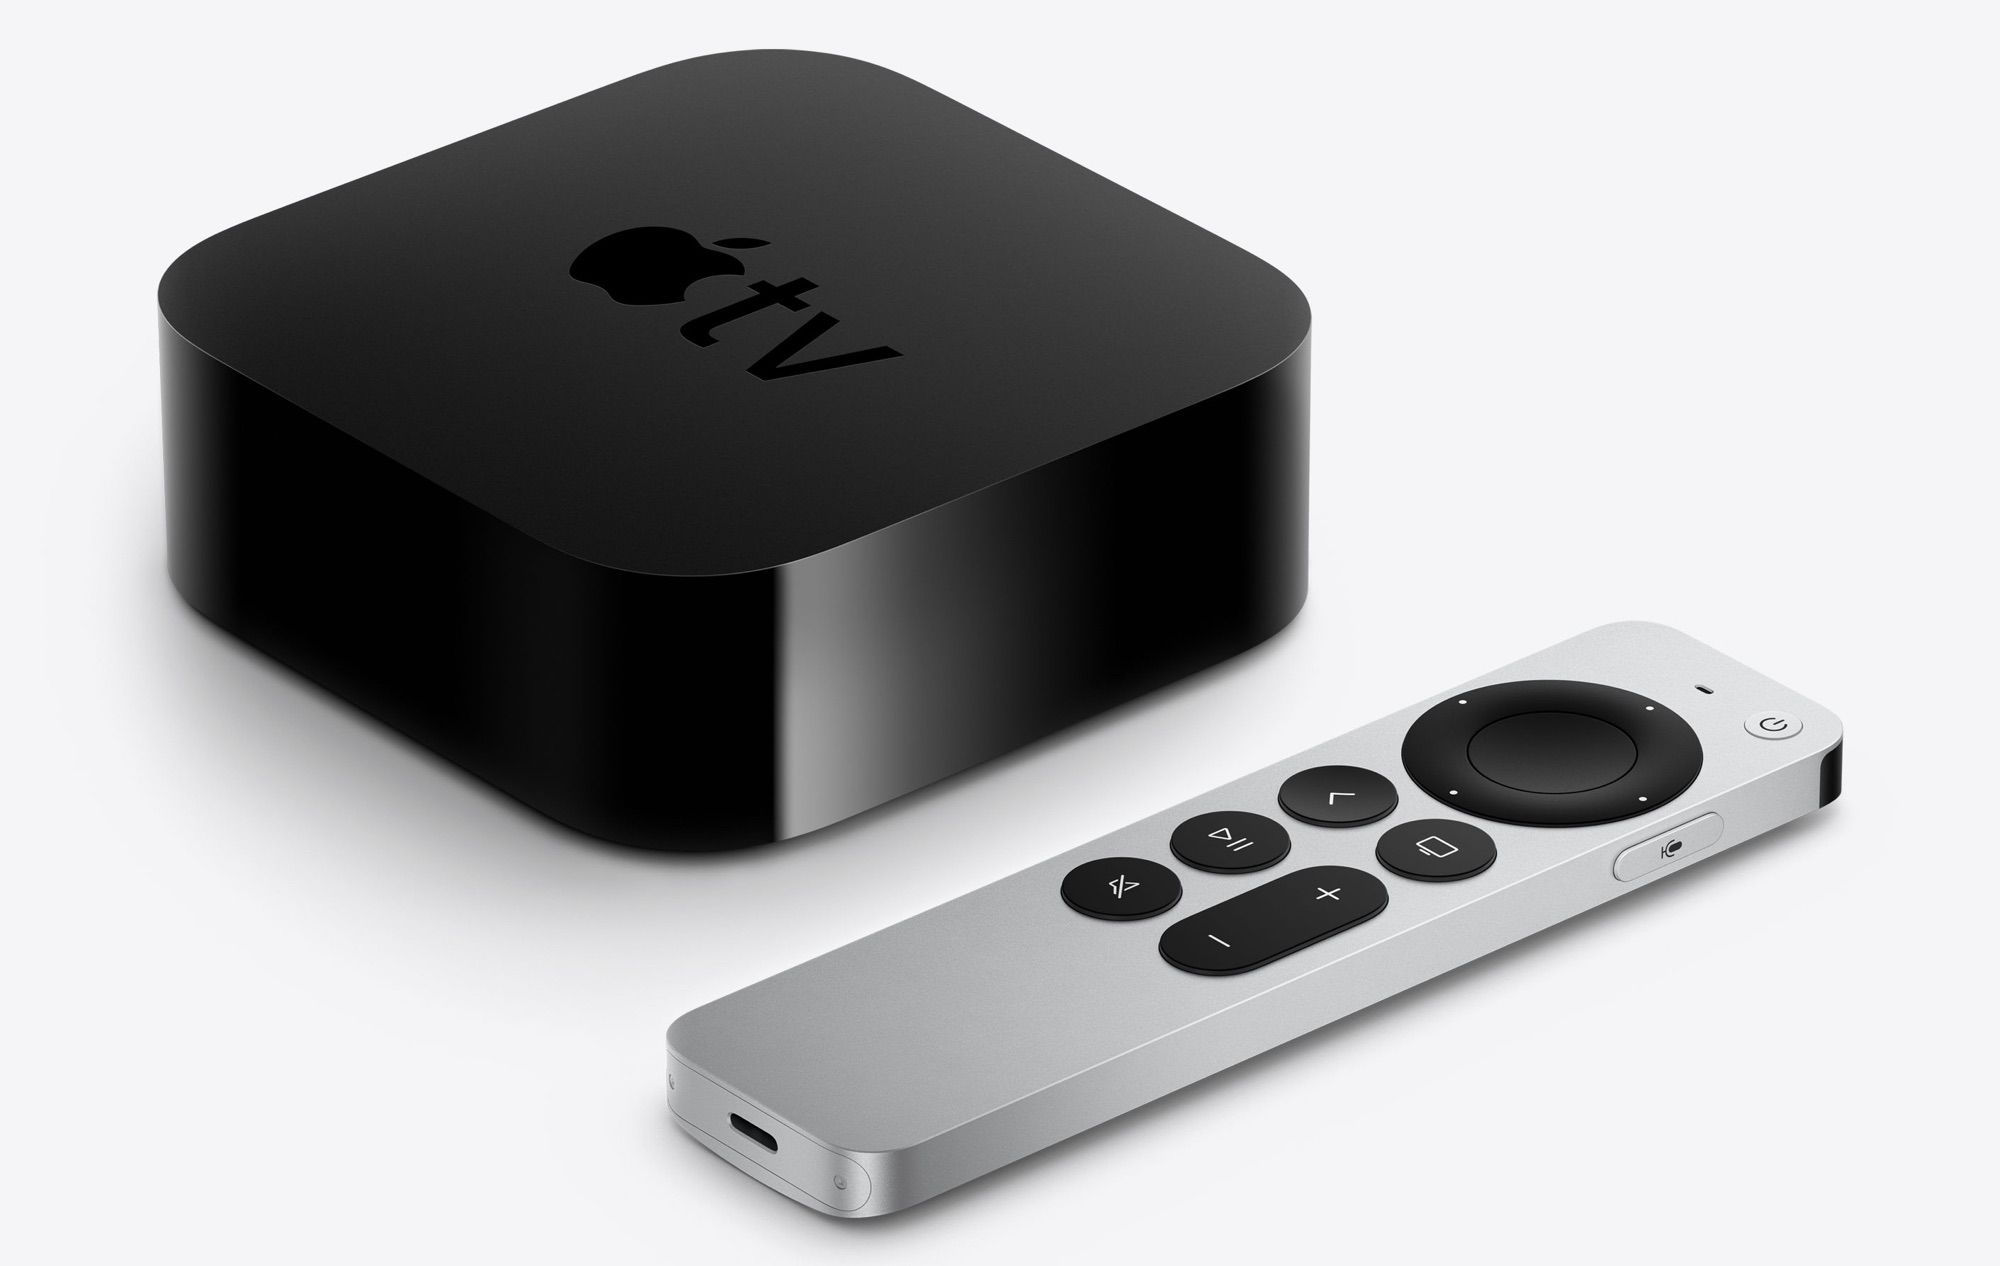 New Siri Remote Lacks Accelerometer and Gyroscope for Gaming on Apple TV